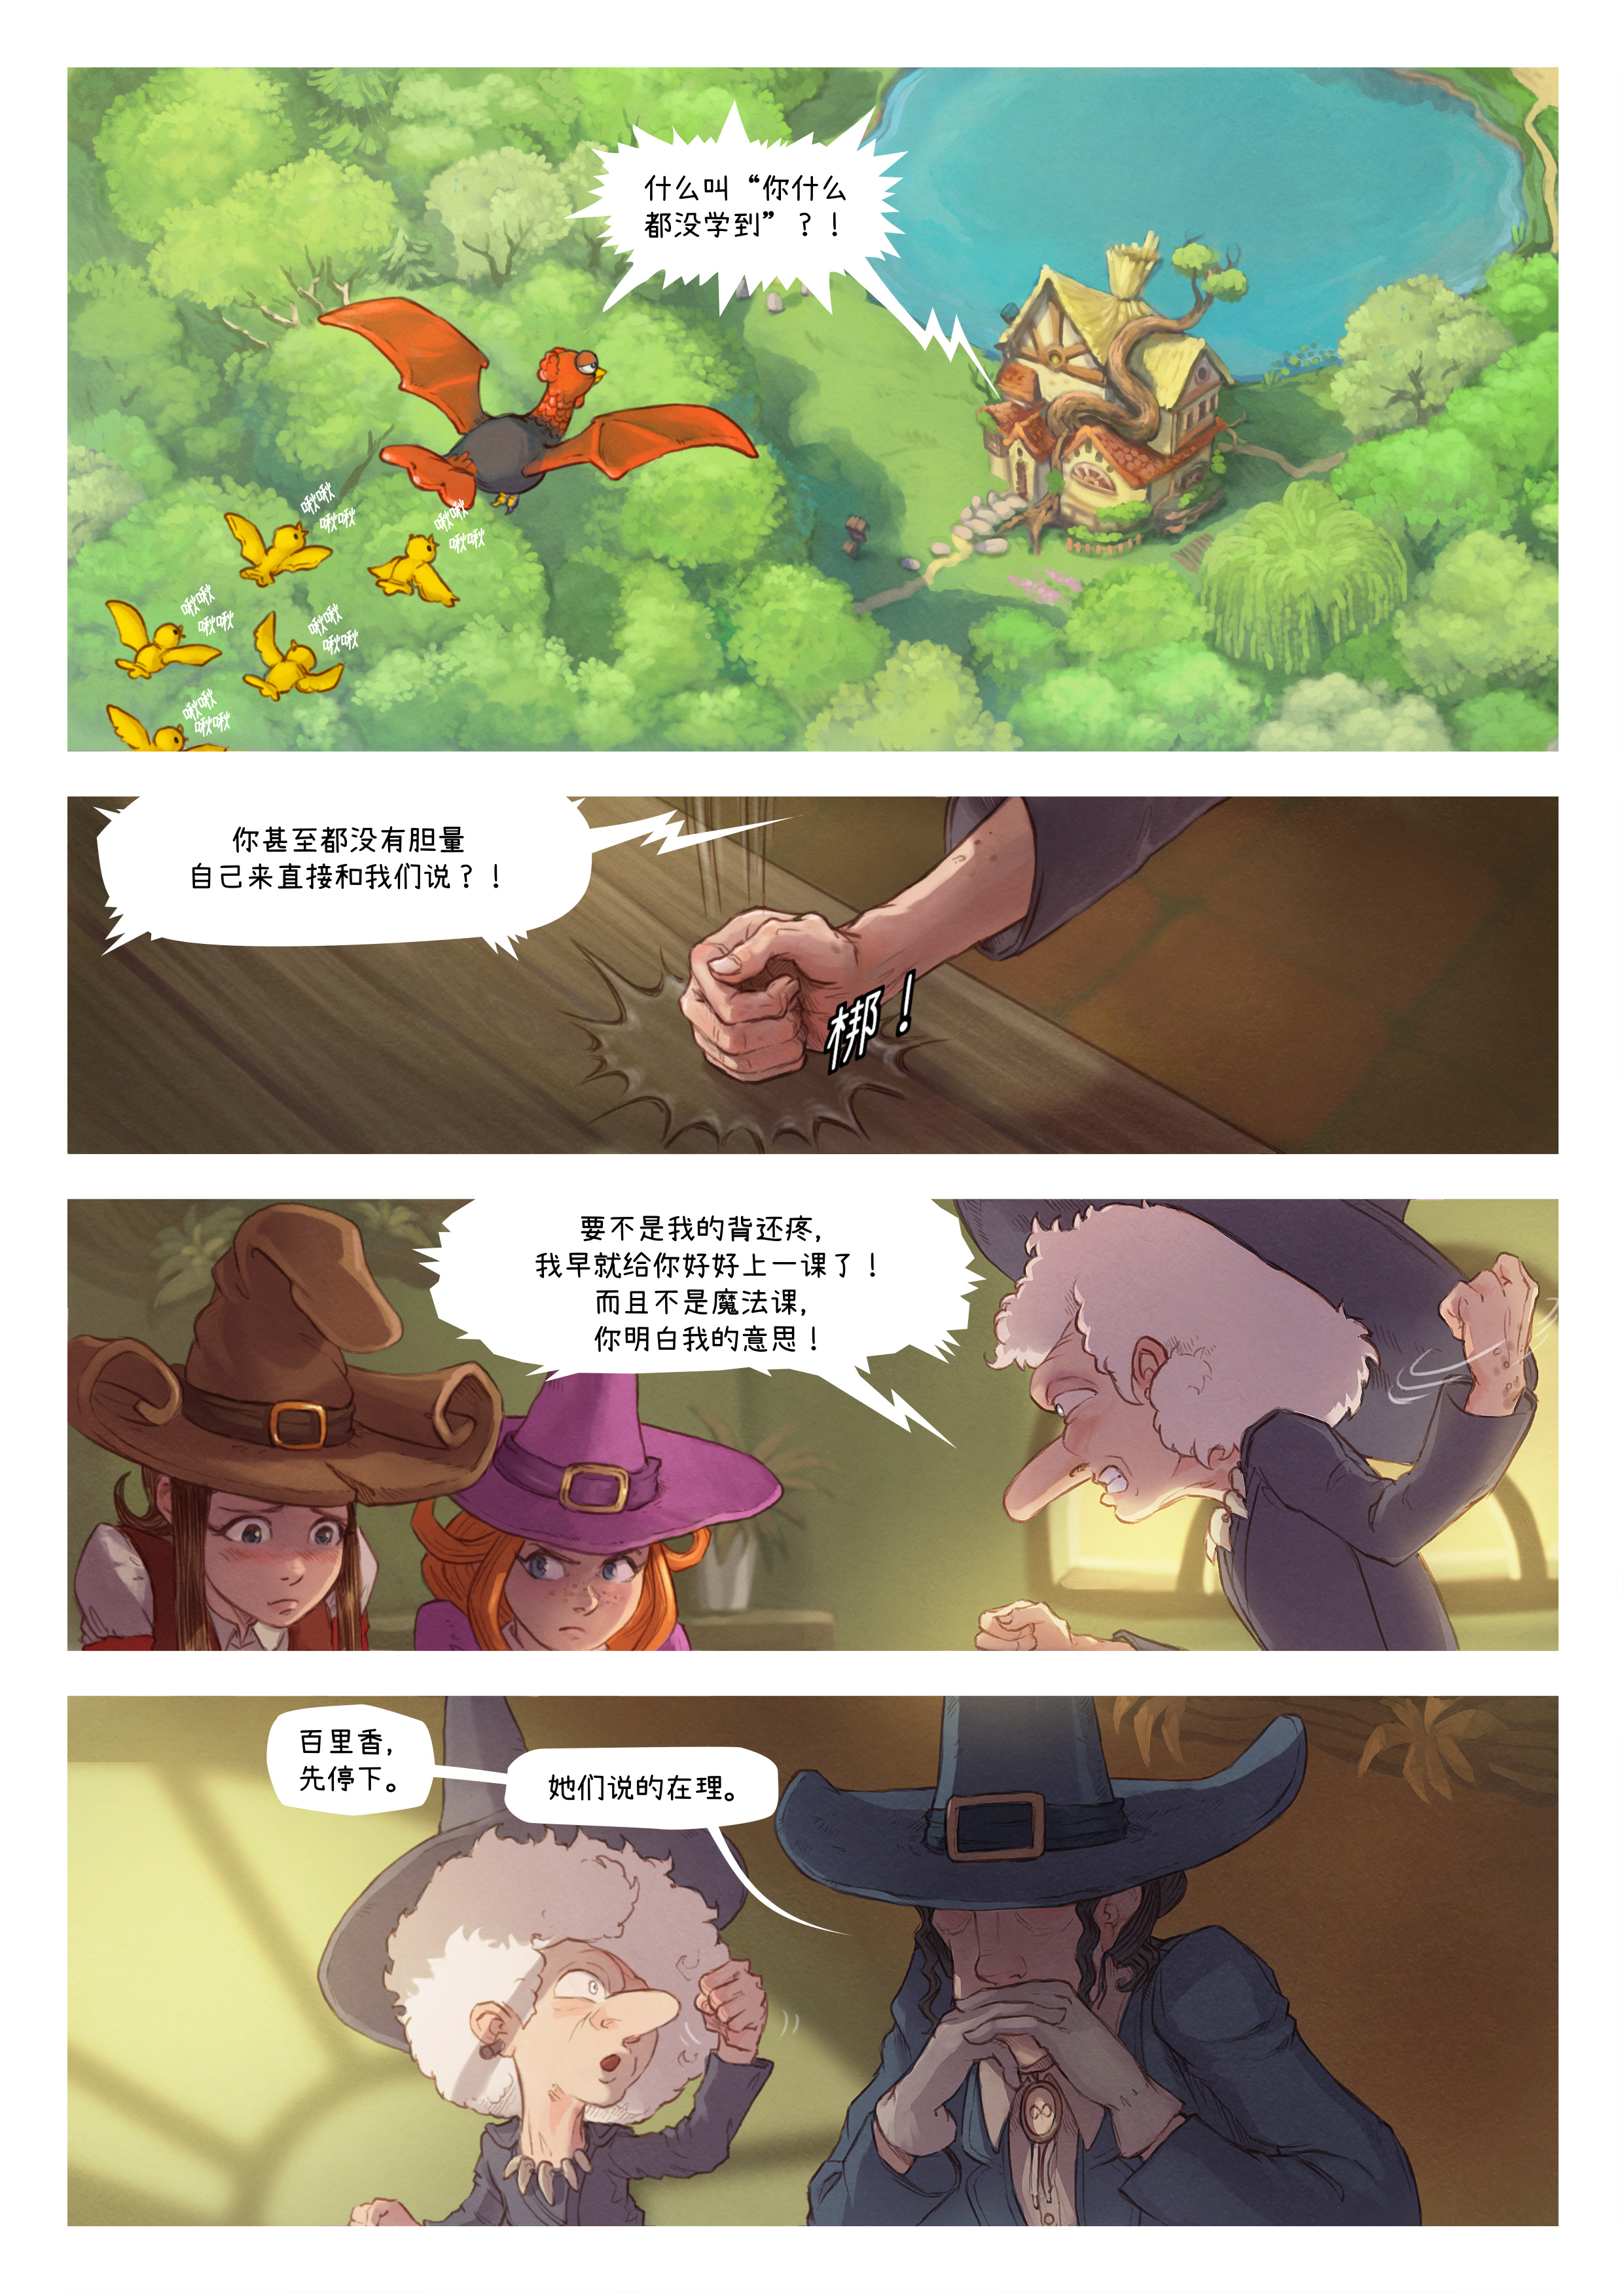 A webcomic page of Pepper&Carrot, 漫画全集 16 [cn], 页面 3